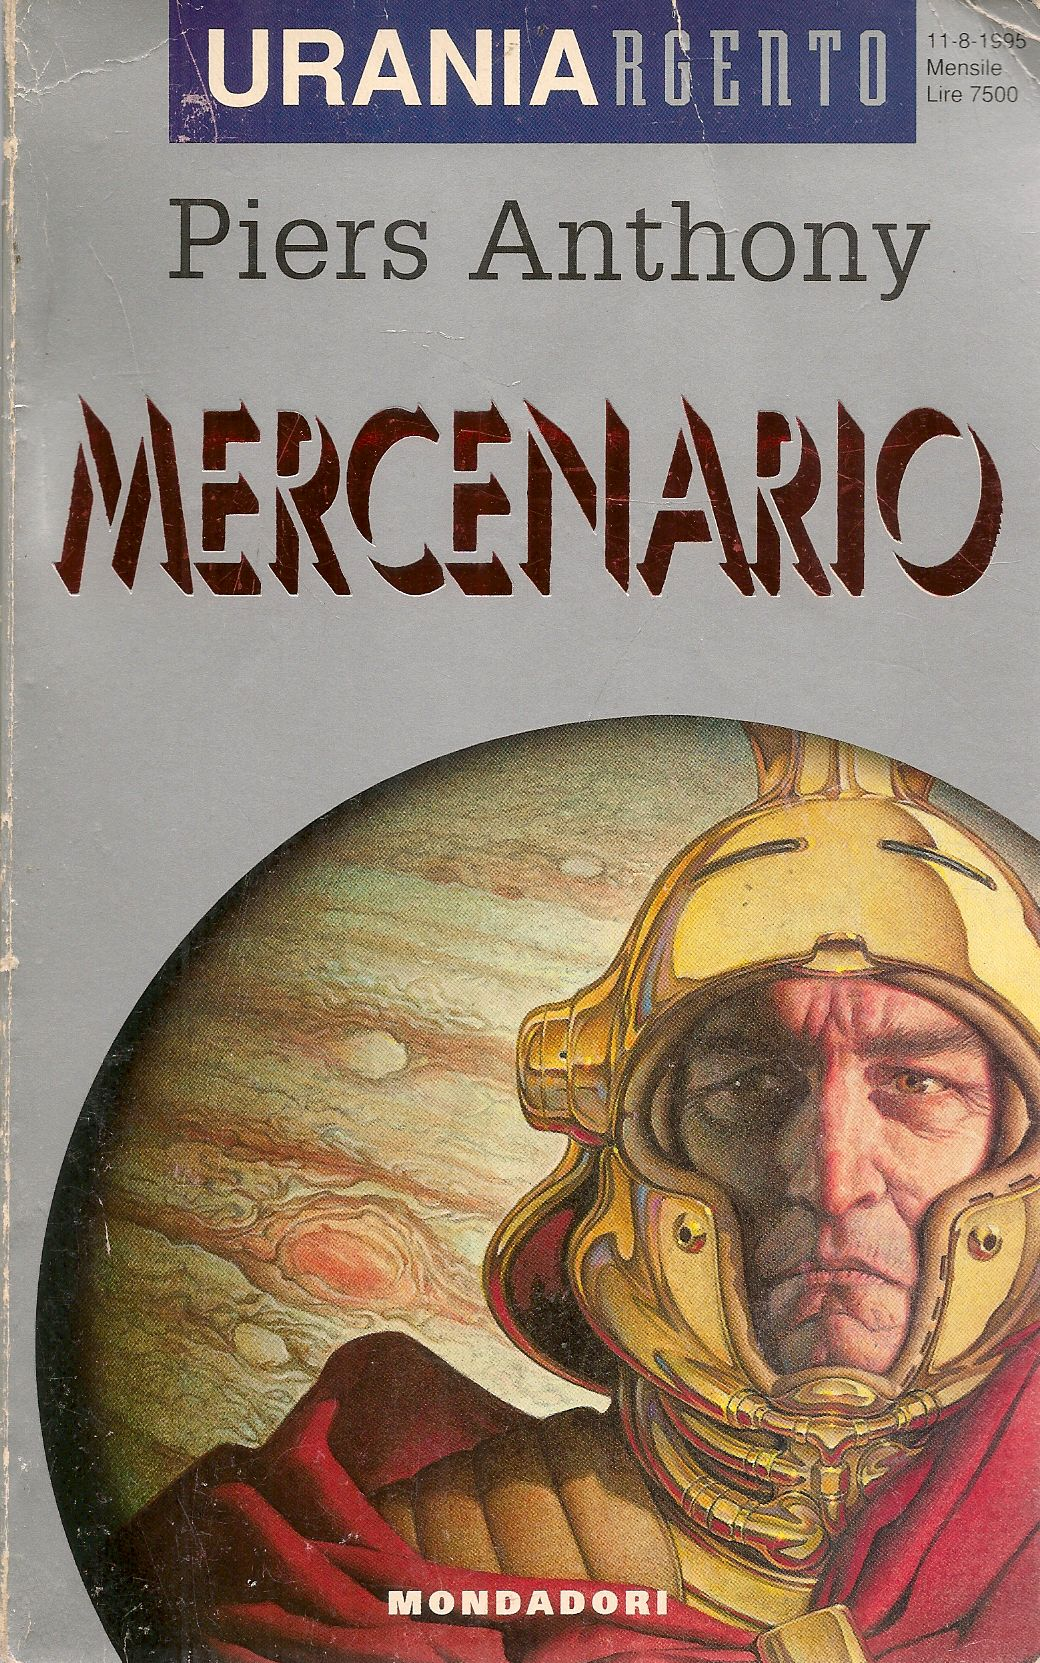 MERCENARIO - PIERS ANTHONY - URANIA ARGENTO N. 8